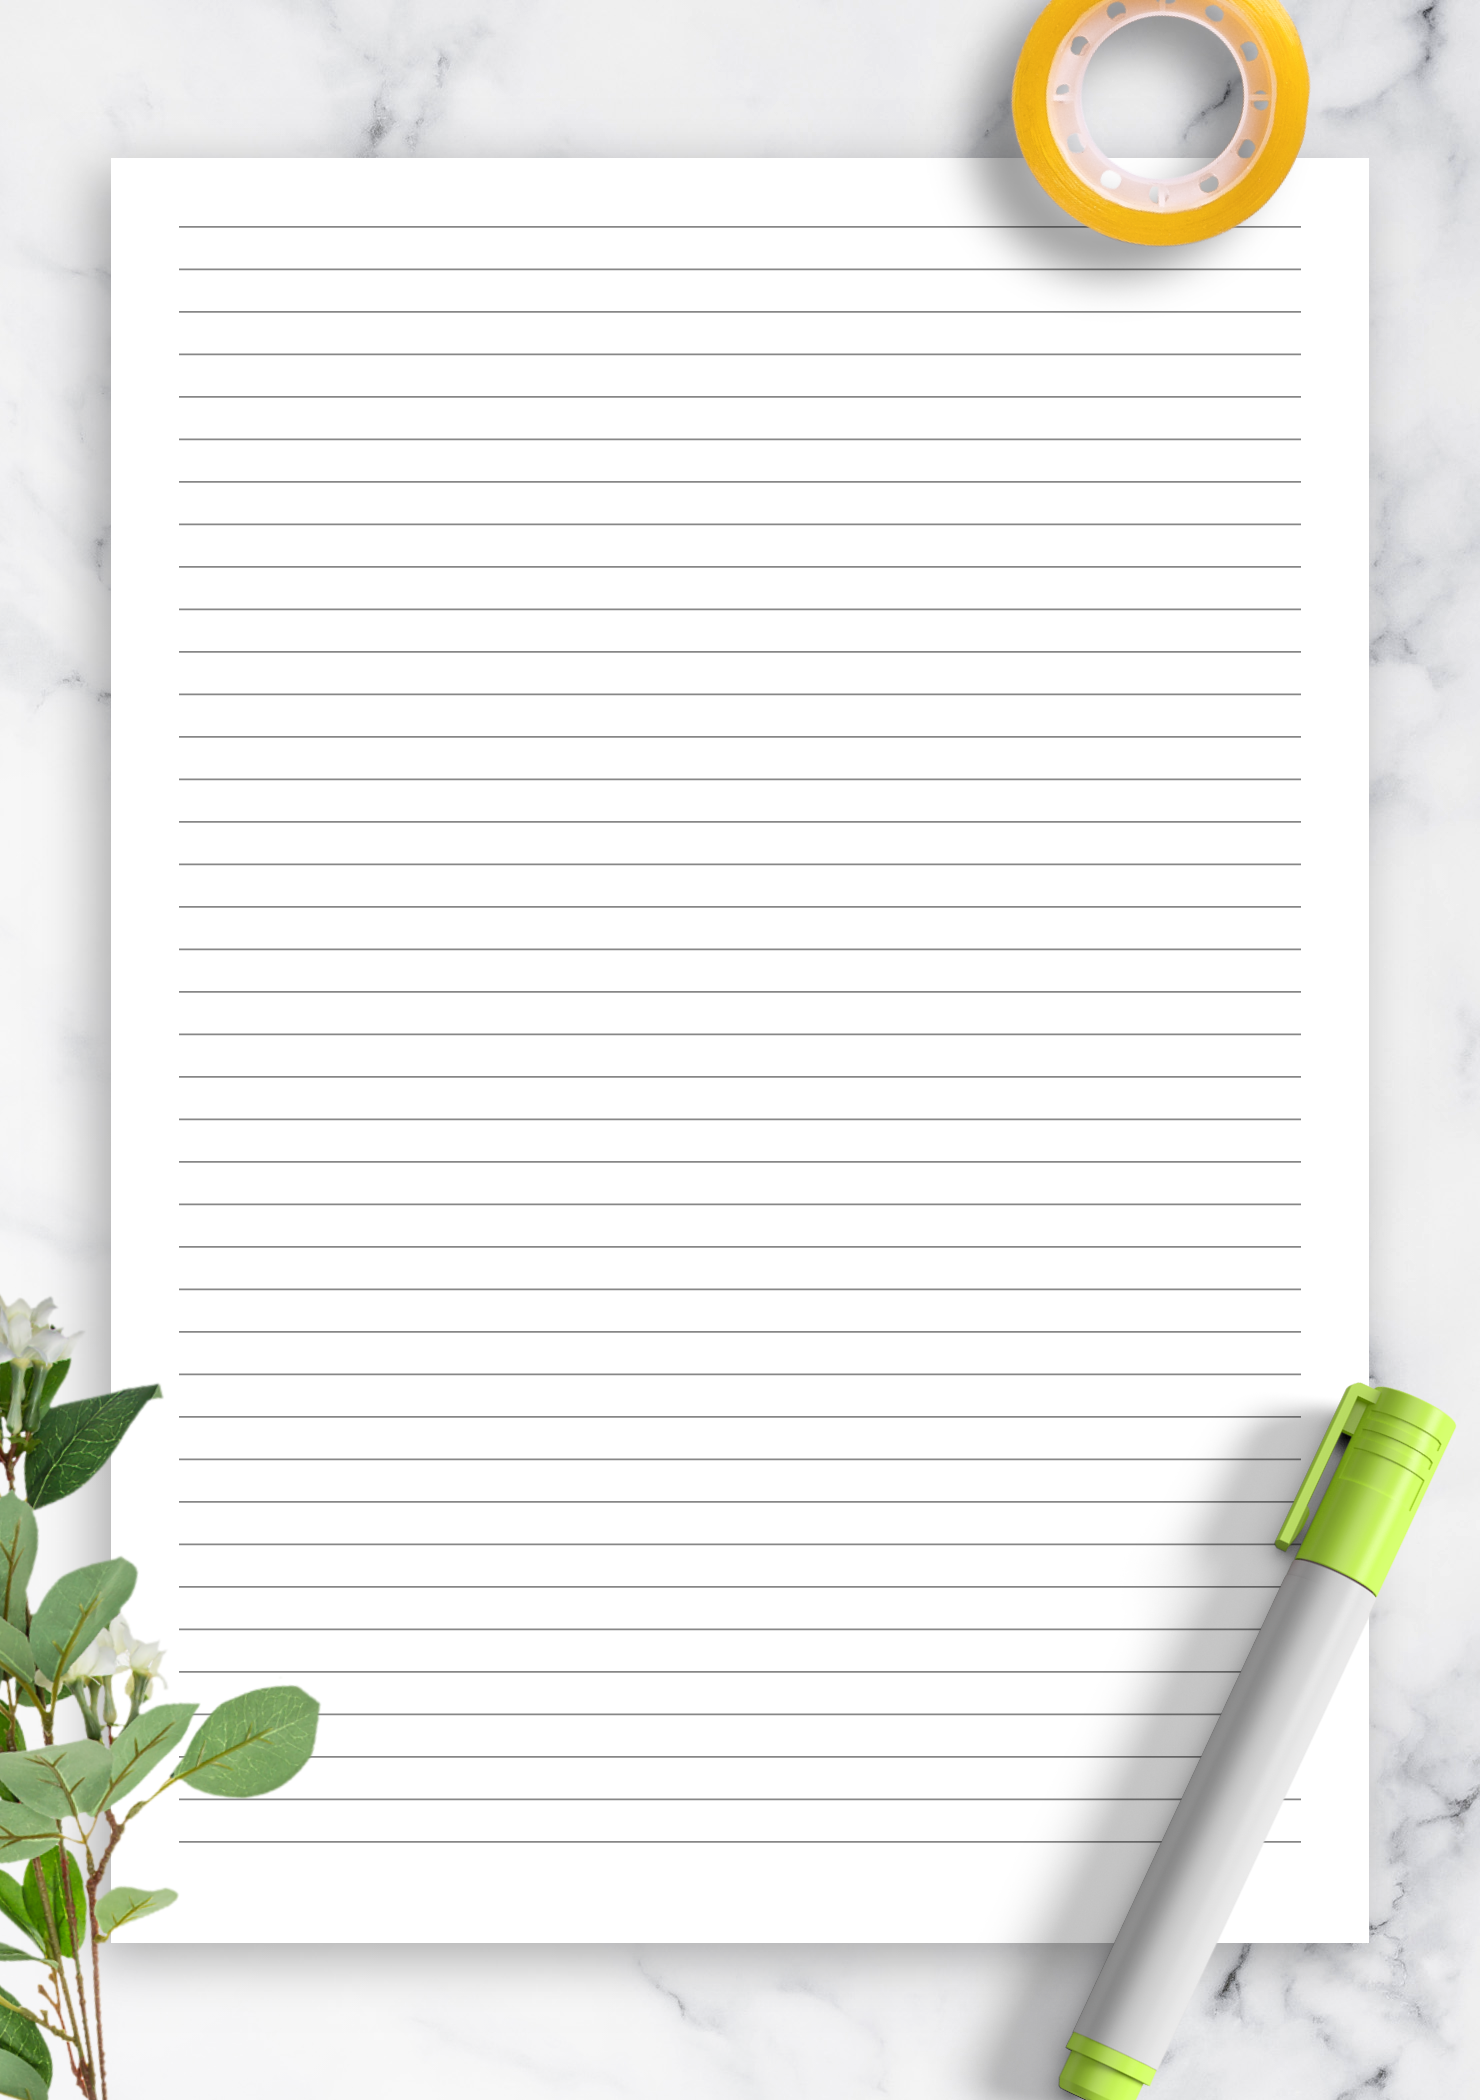 Printable Lined Paper Template With 5 Mm Line Height Choose Page Size And Download For Fr Notebook Paper Template Paper Template Paper Template Free Printable